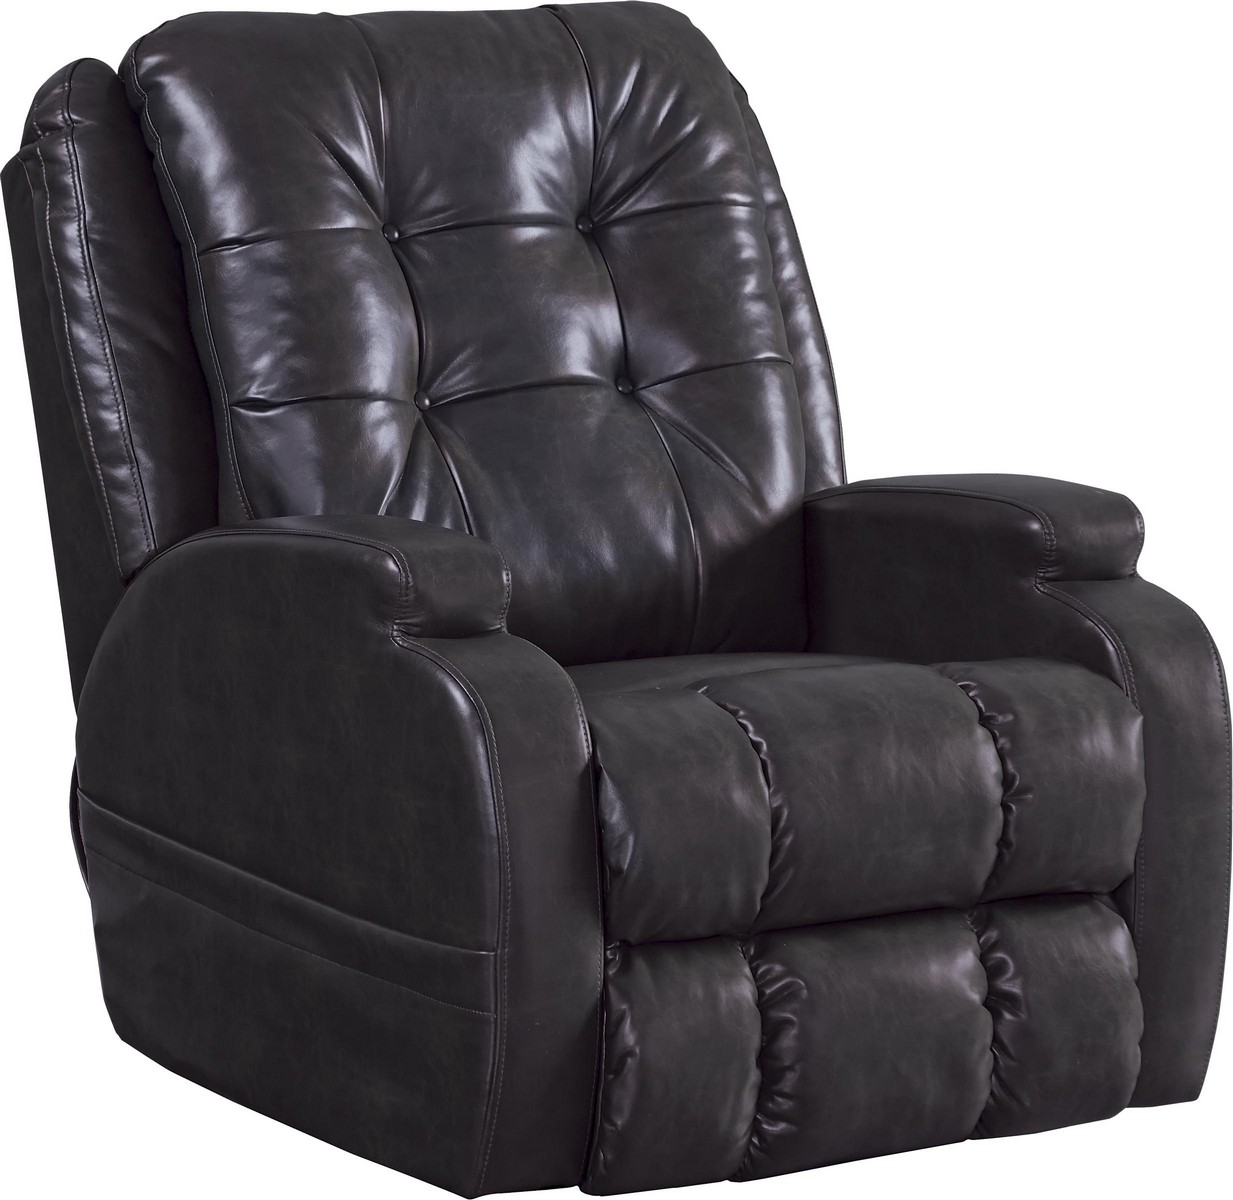 Catnapper Lift Chairs Catnapper Jenson Power Lift Lay Flat Recliner With Dual